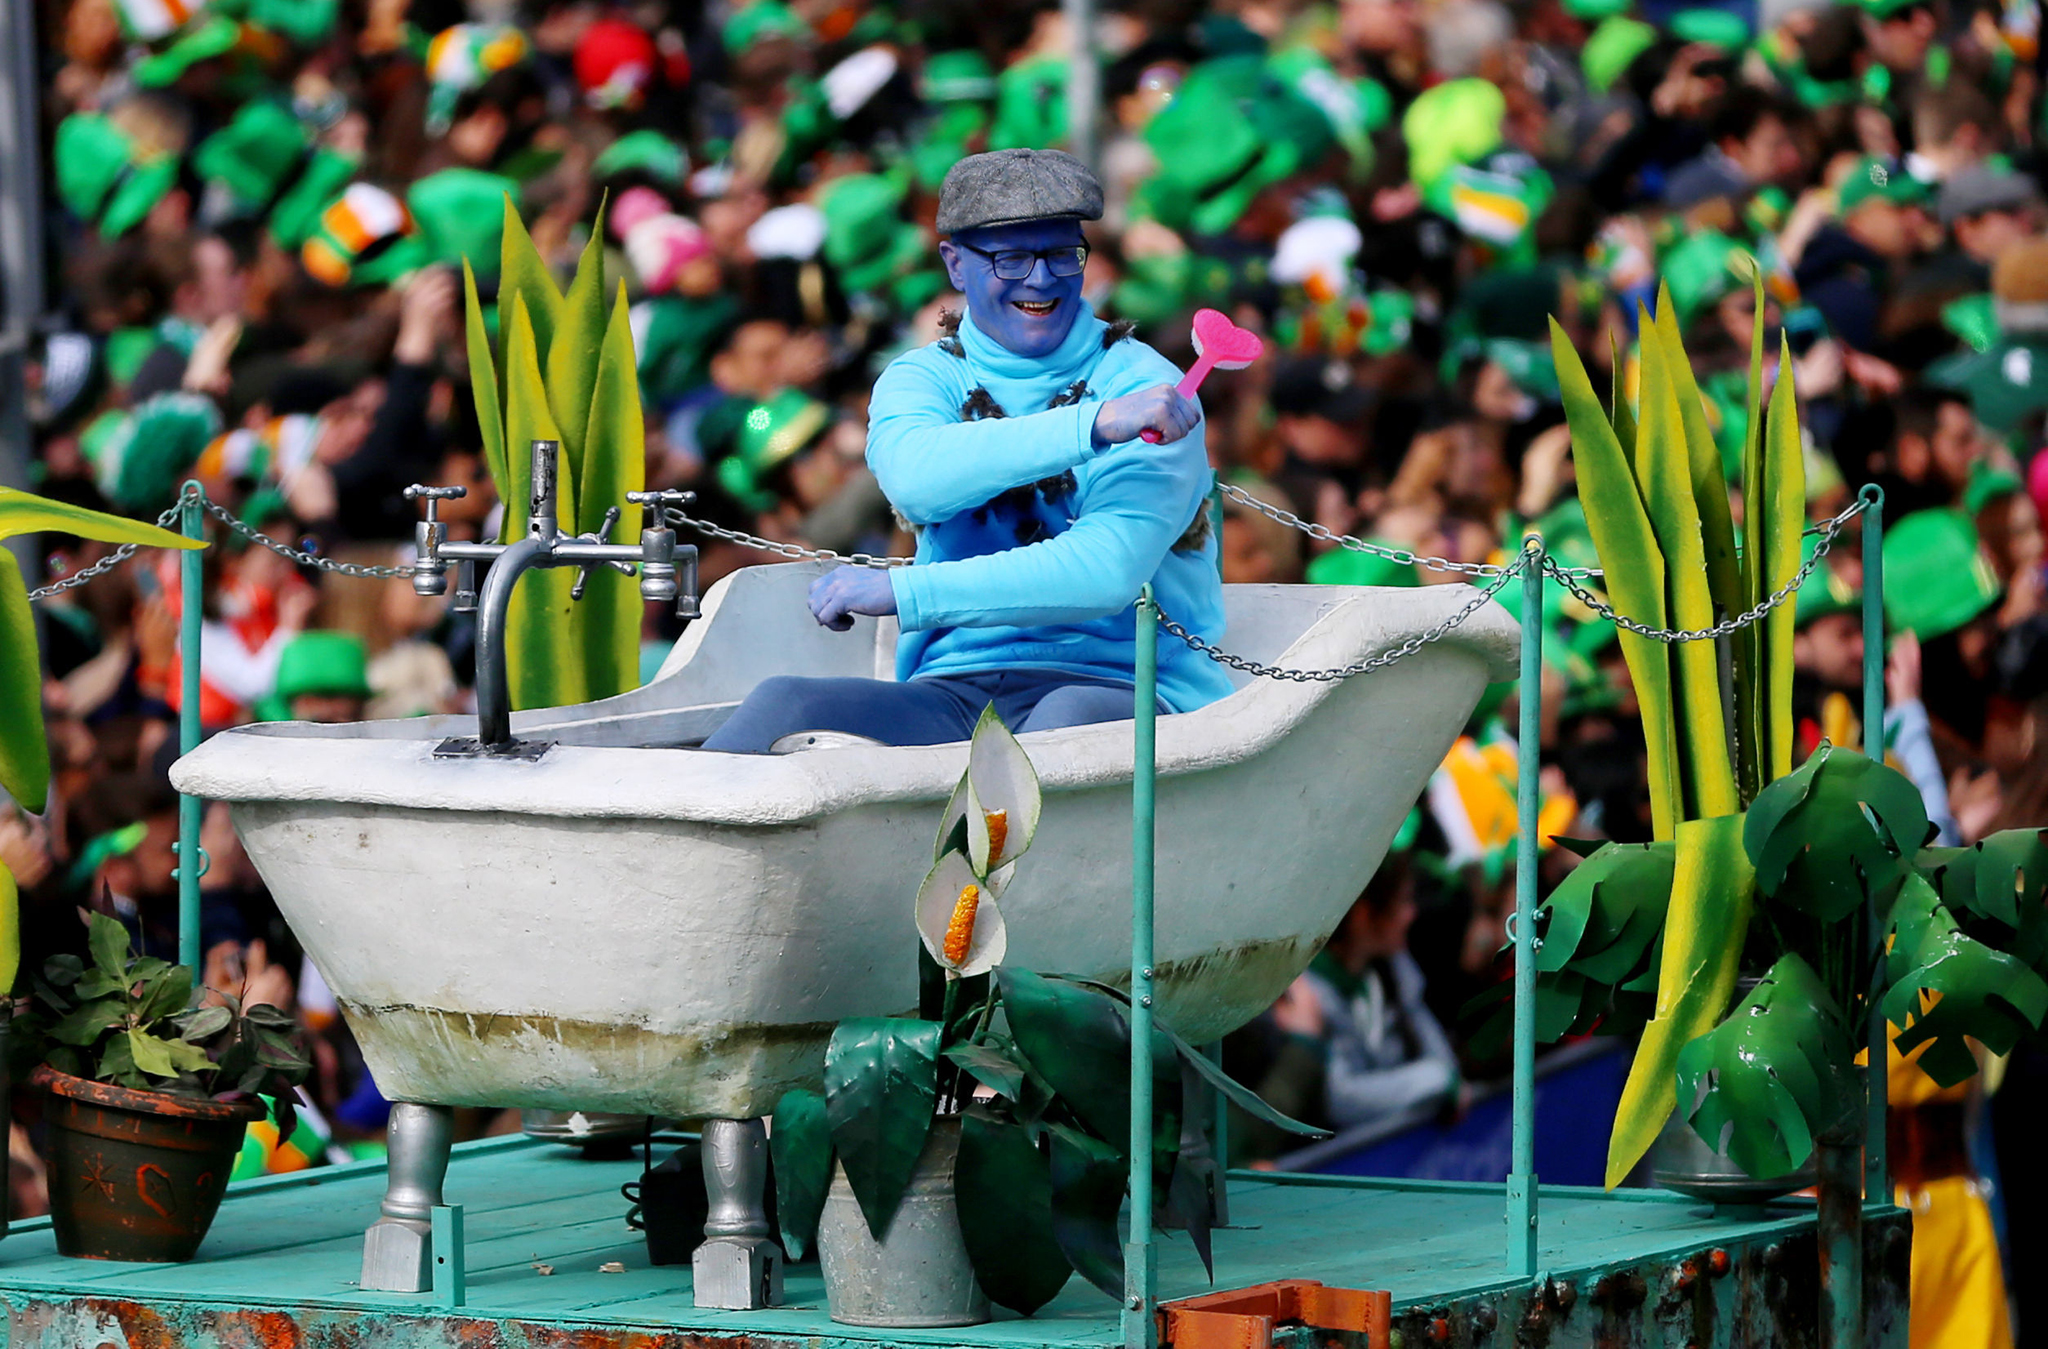 Participants take part in the St Patrick's Day parade on the streets of Dublin.